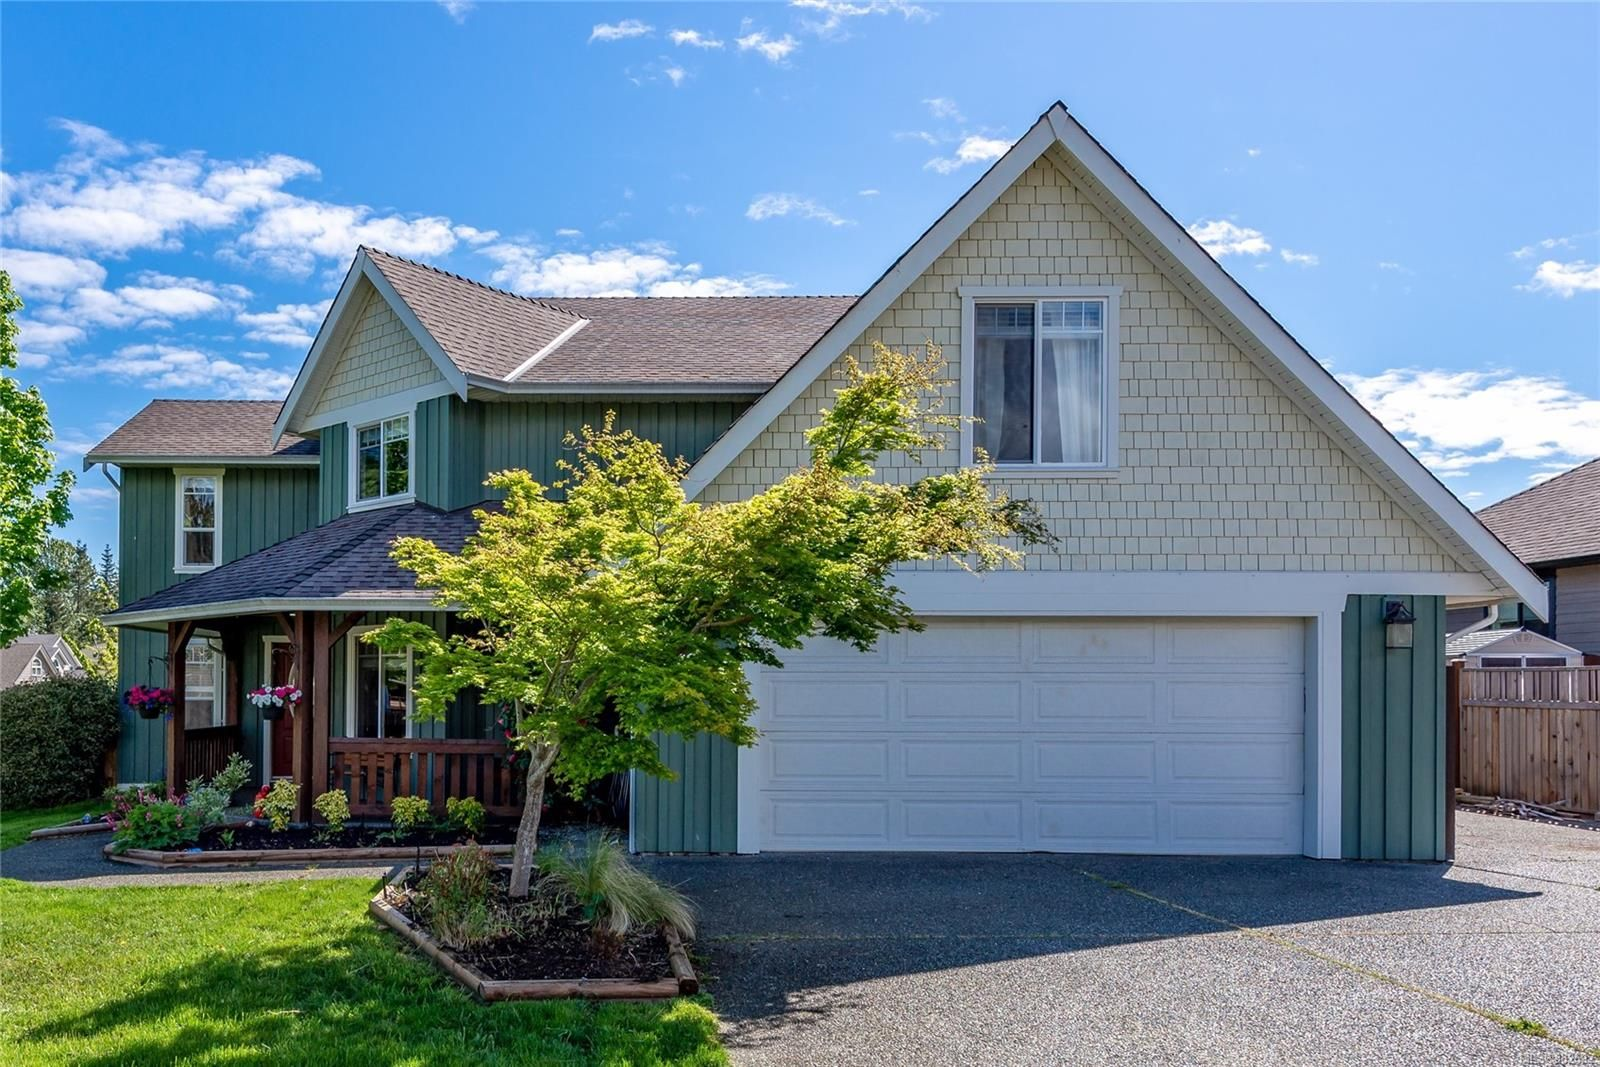 Main Photo: 185 Maryland Rd in : CR Willow Point House for sale (Campbell River)  : MLS®# 882692